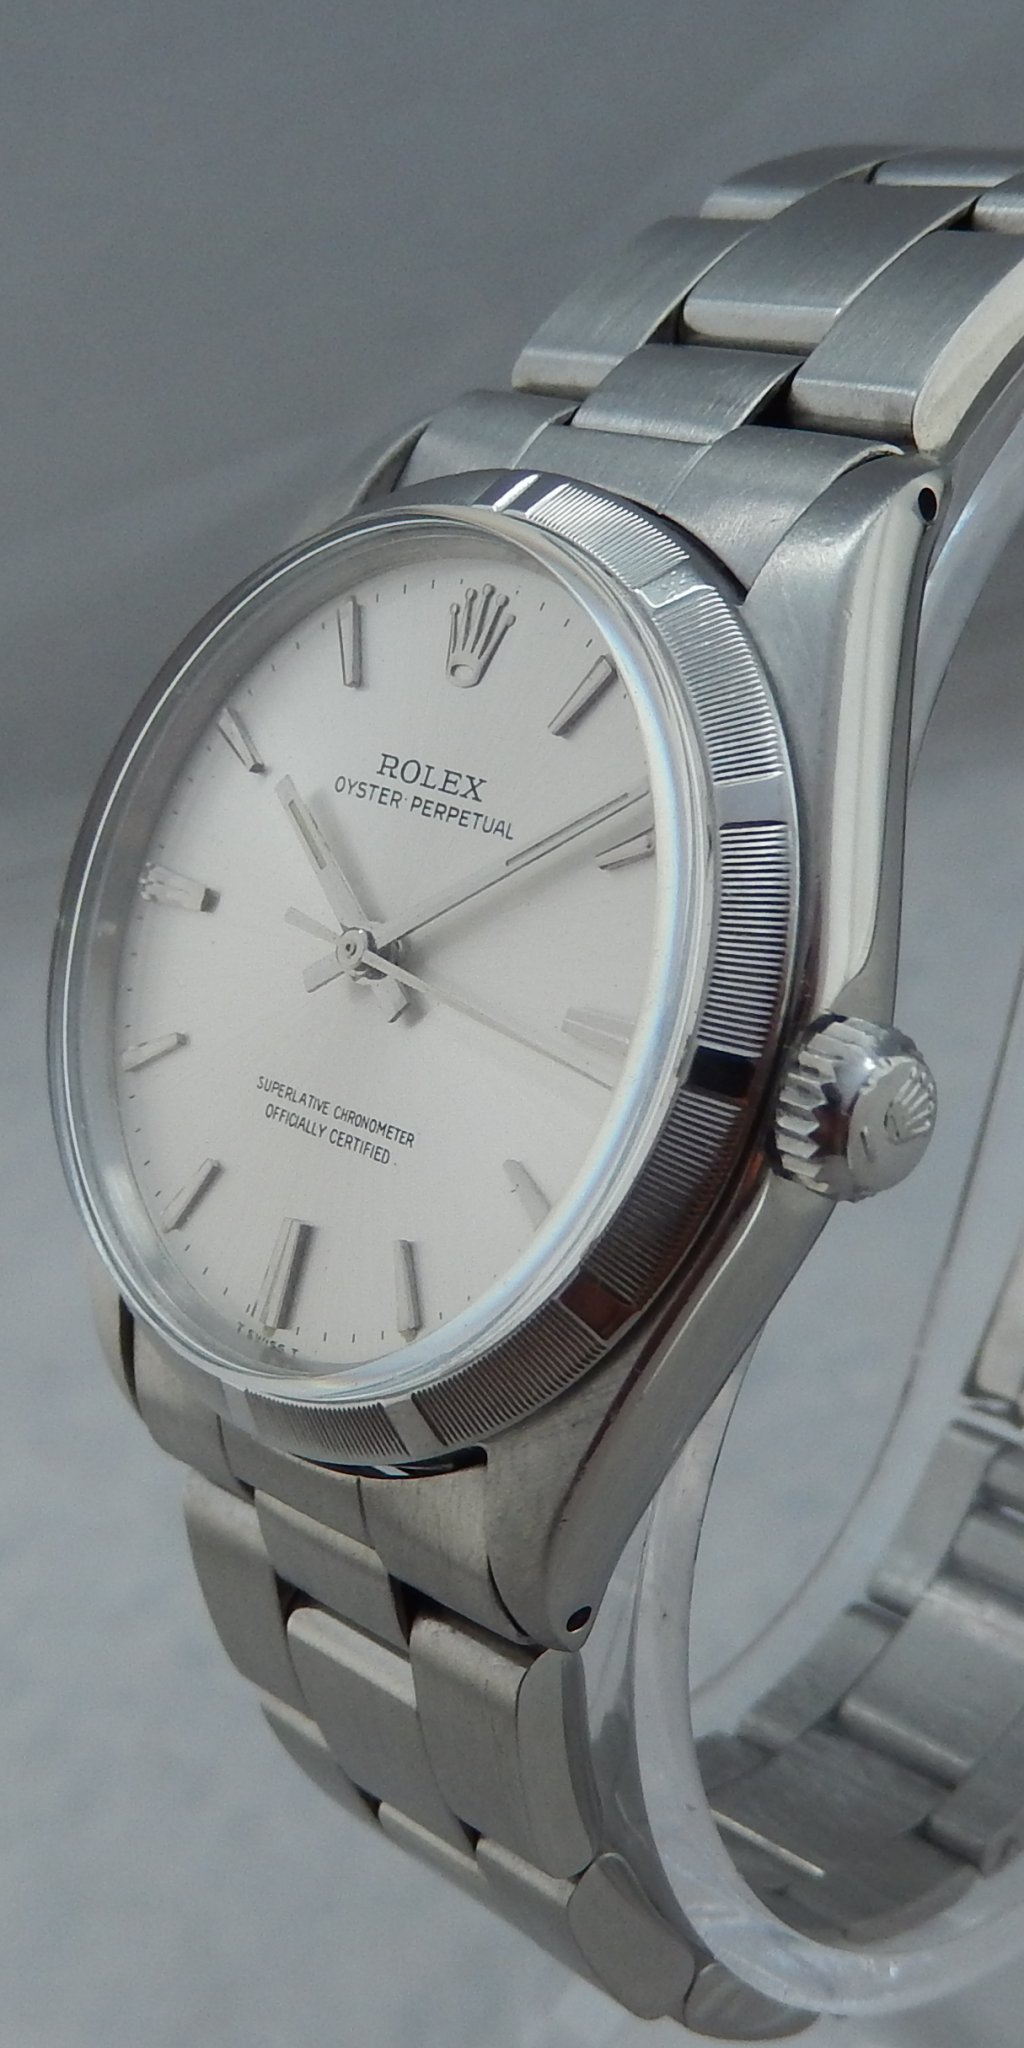 dial perpetual pakistan rolex in available men pk date silver watch buy watches day price oyster mens product